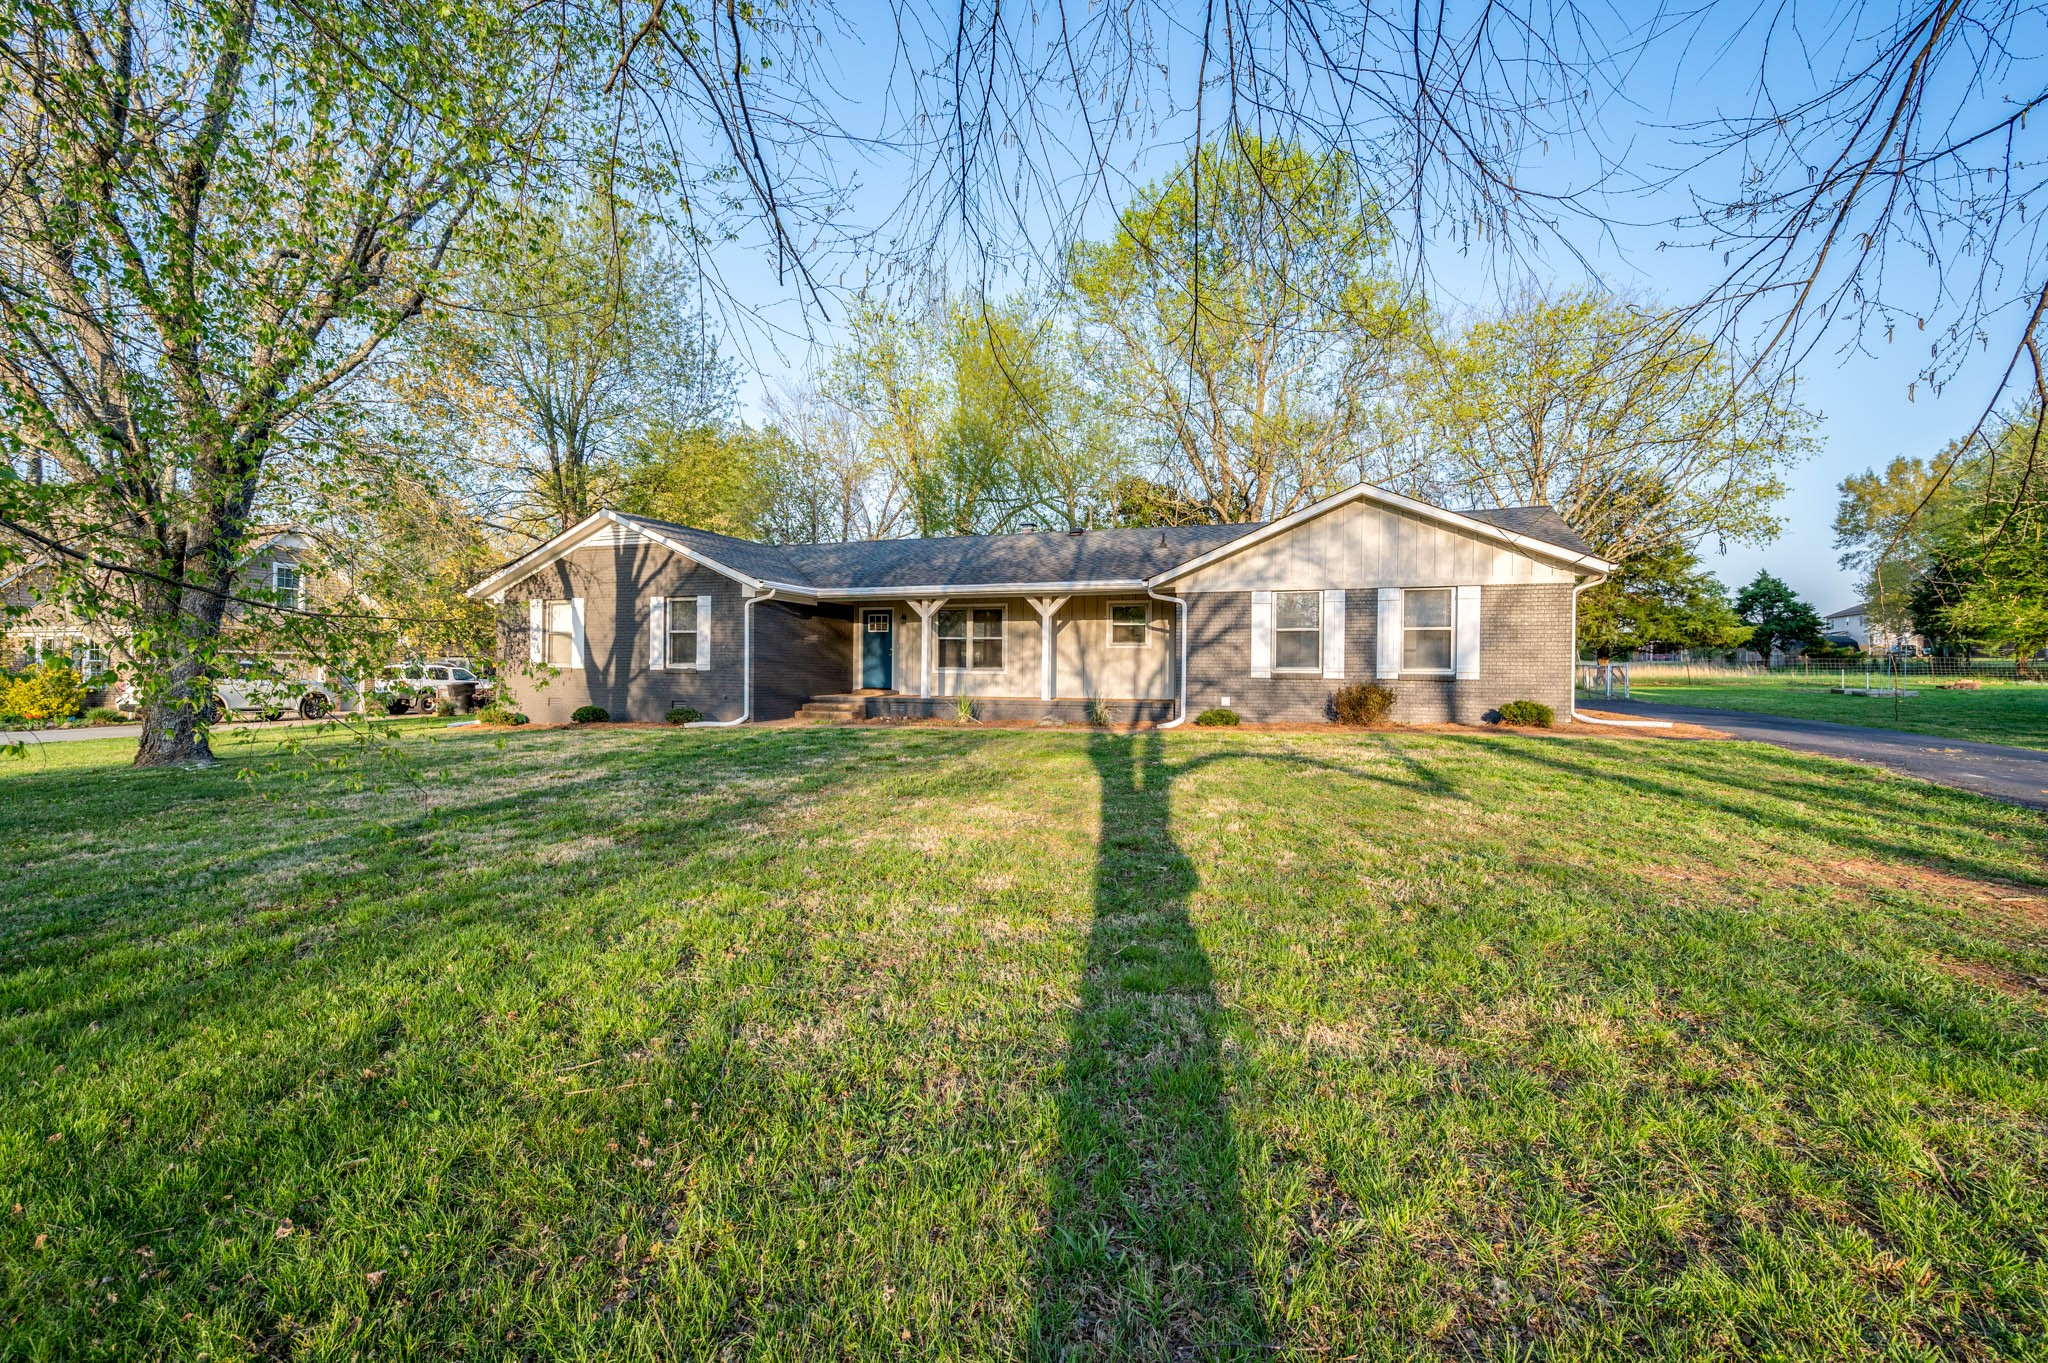 Fully Renovated brick ranch style home in a well established neighborhood.  This 3/2 home with over 2000 SqFt includes a massive bonus room! Modern rustic feel inside with  decorator grade finishes including brick fireplace, ceiling beams, granite counter tops, SS Appliances, new paint inside and out and much more!  This is a MUST SEE. Run dont walk, this one wont last long!  Ask about our Home Trade-IN program!